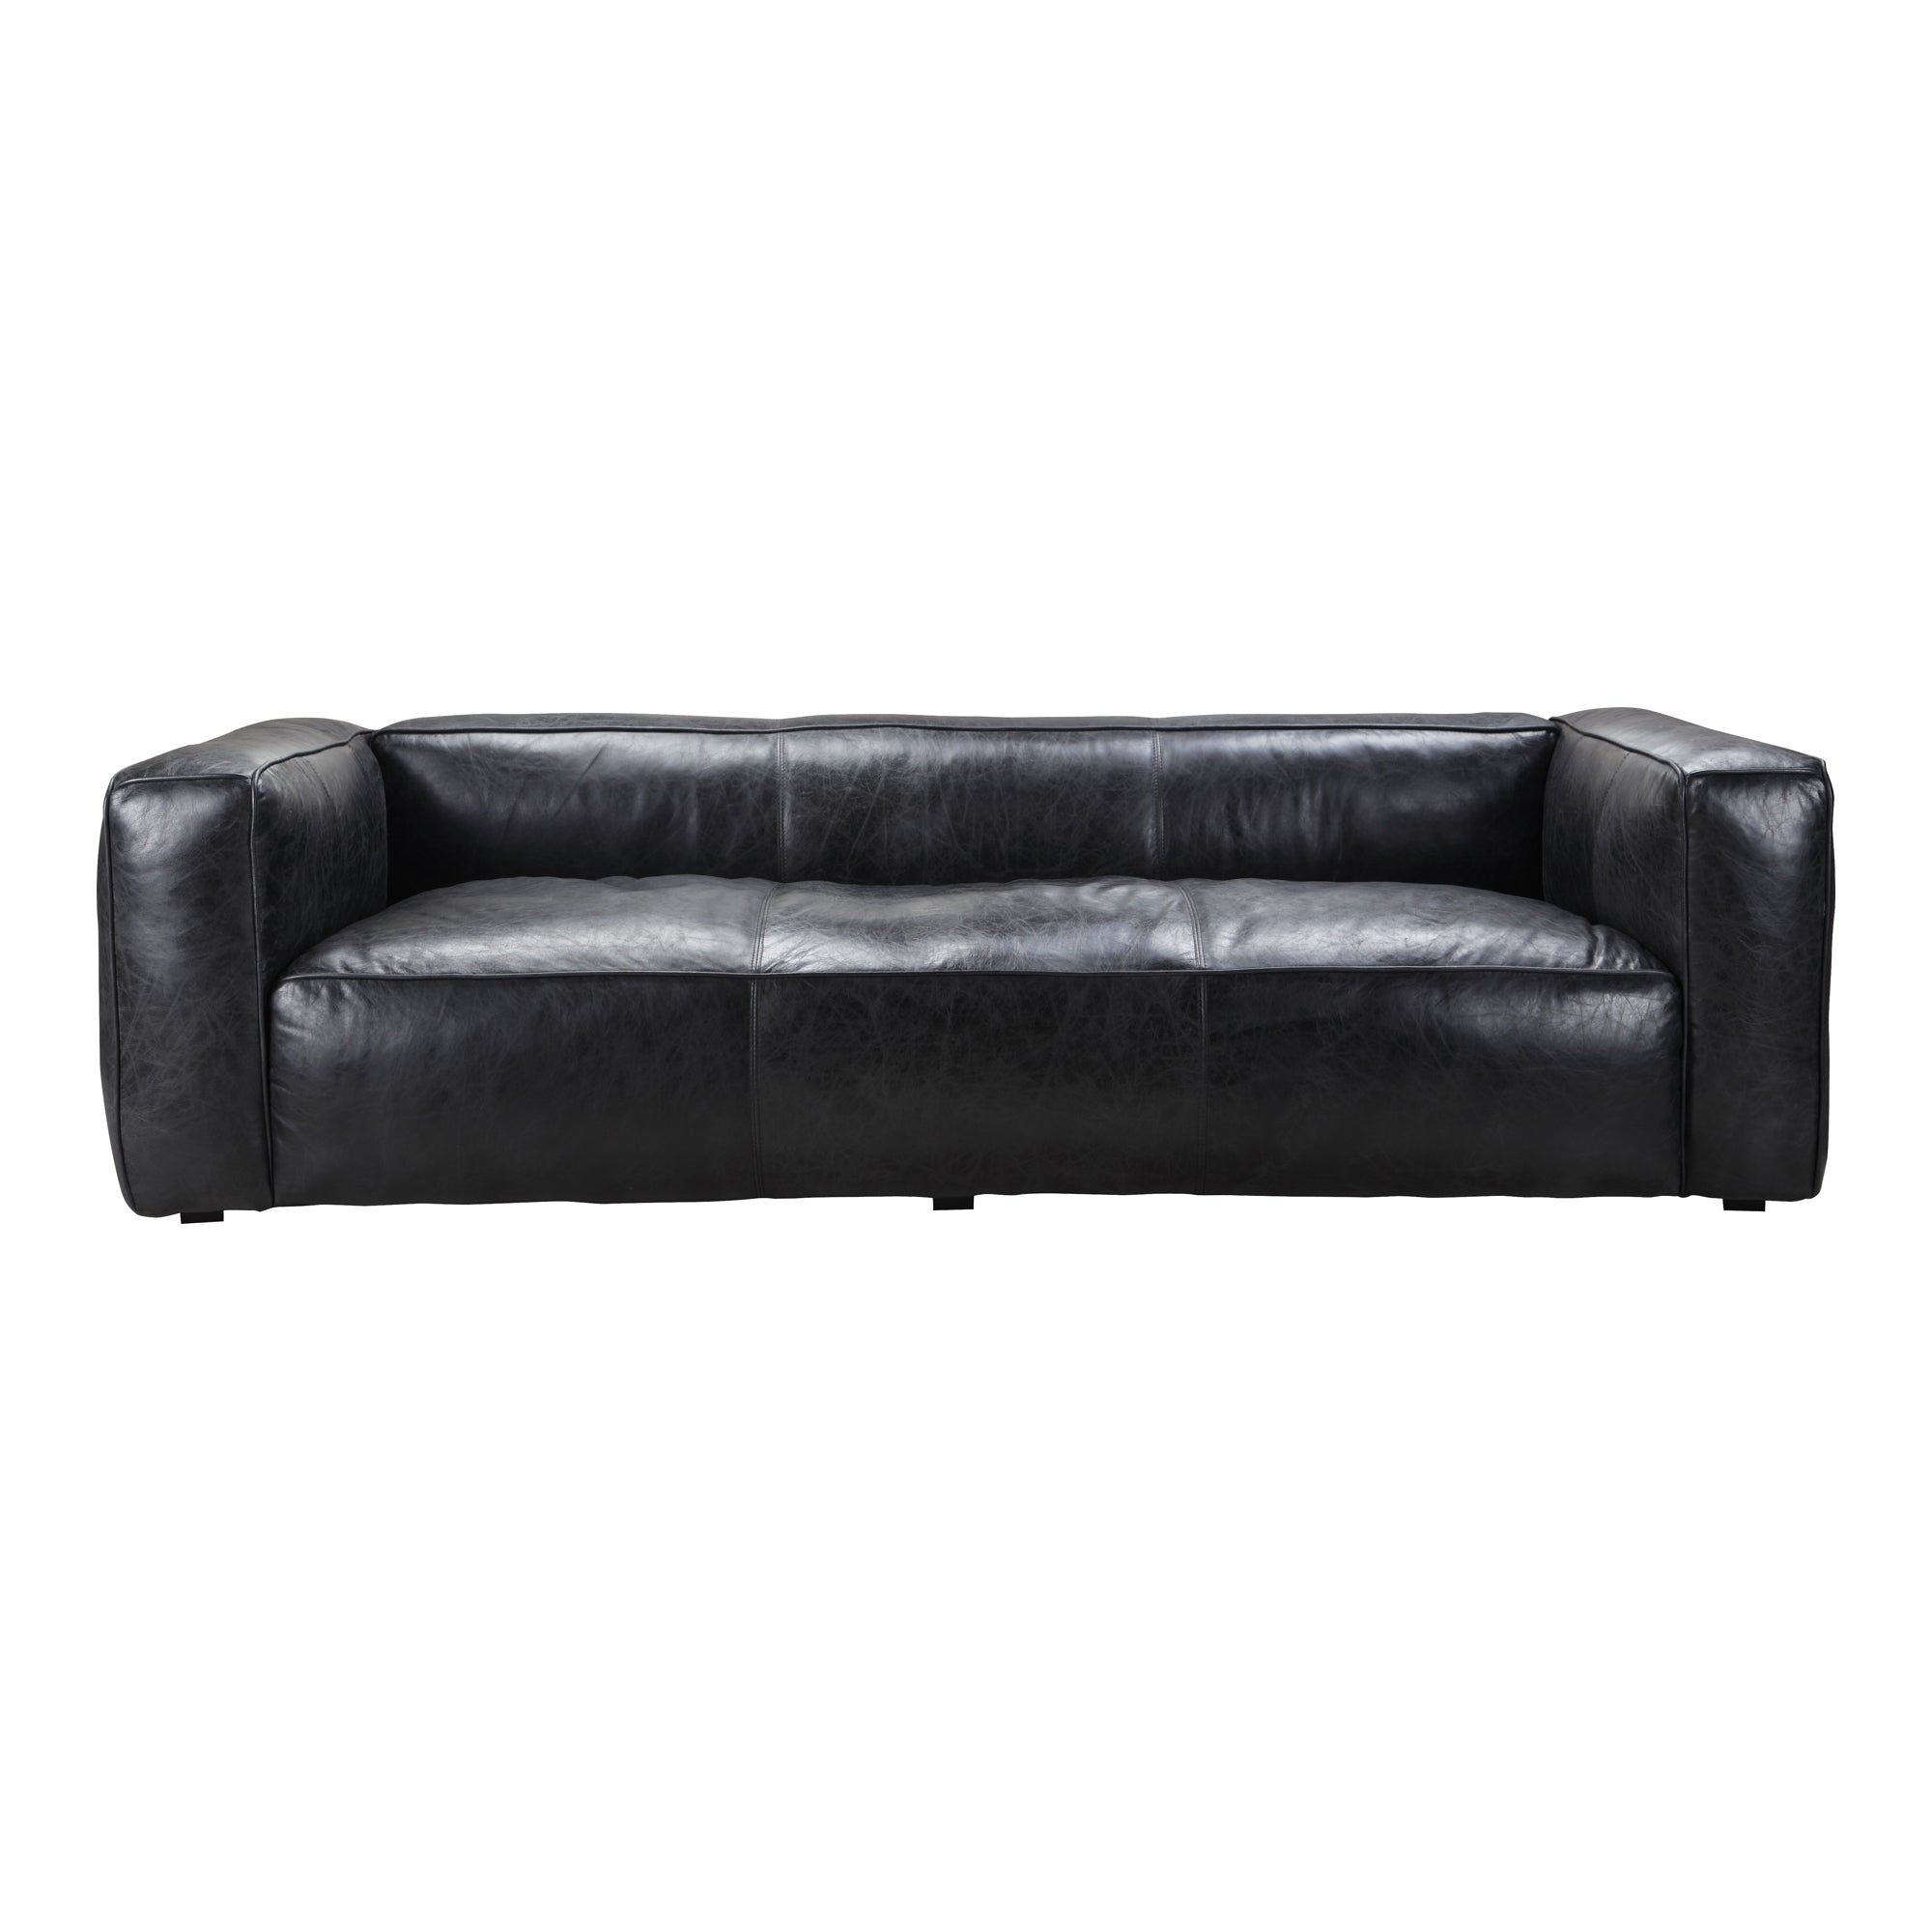 KIRBY SOFA, Black - Tops-Dress